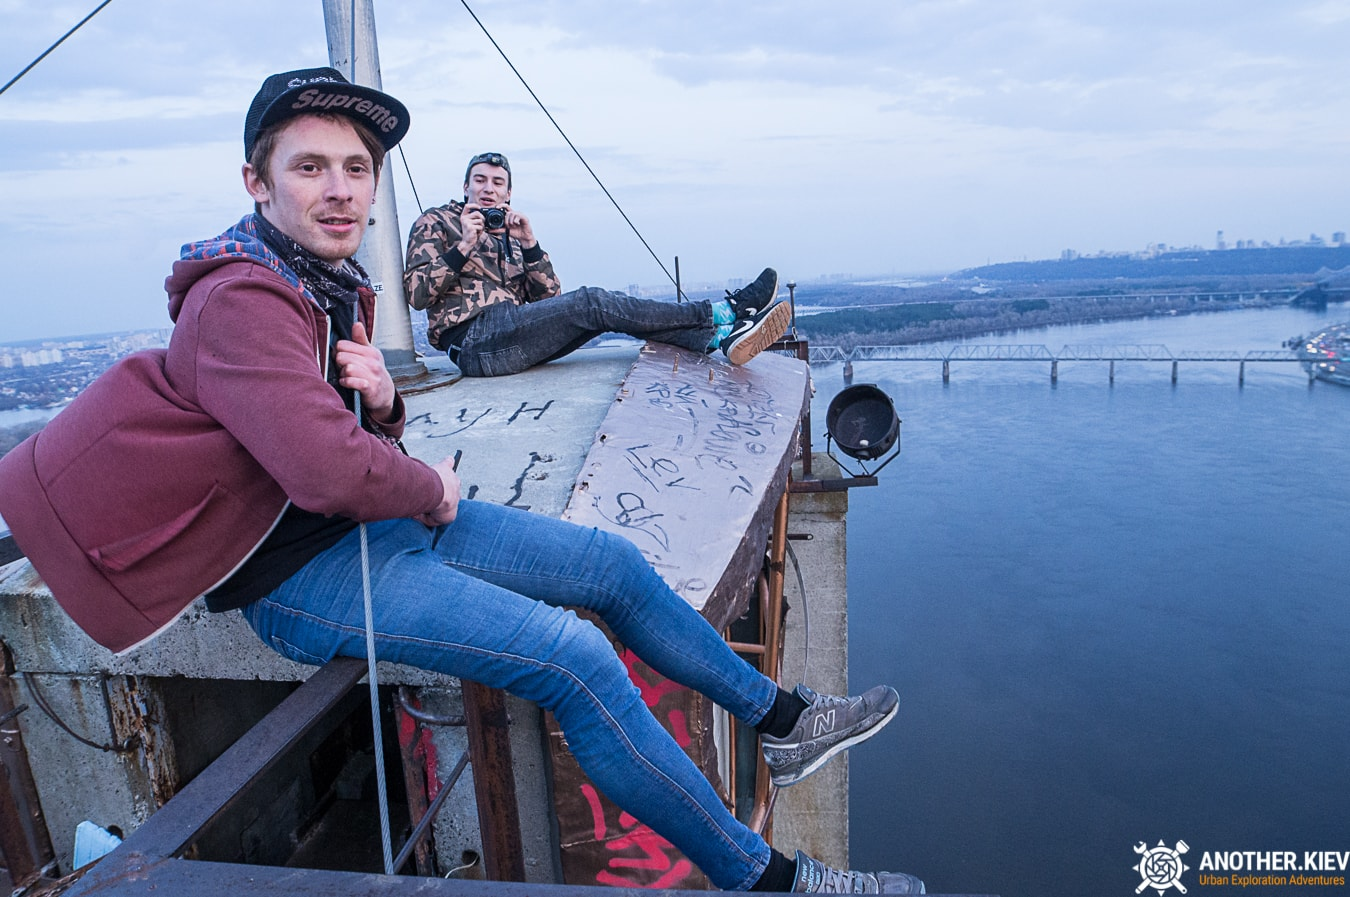 oleg and max on the moscow bridge top